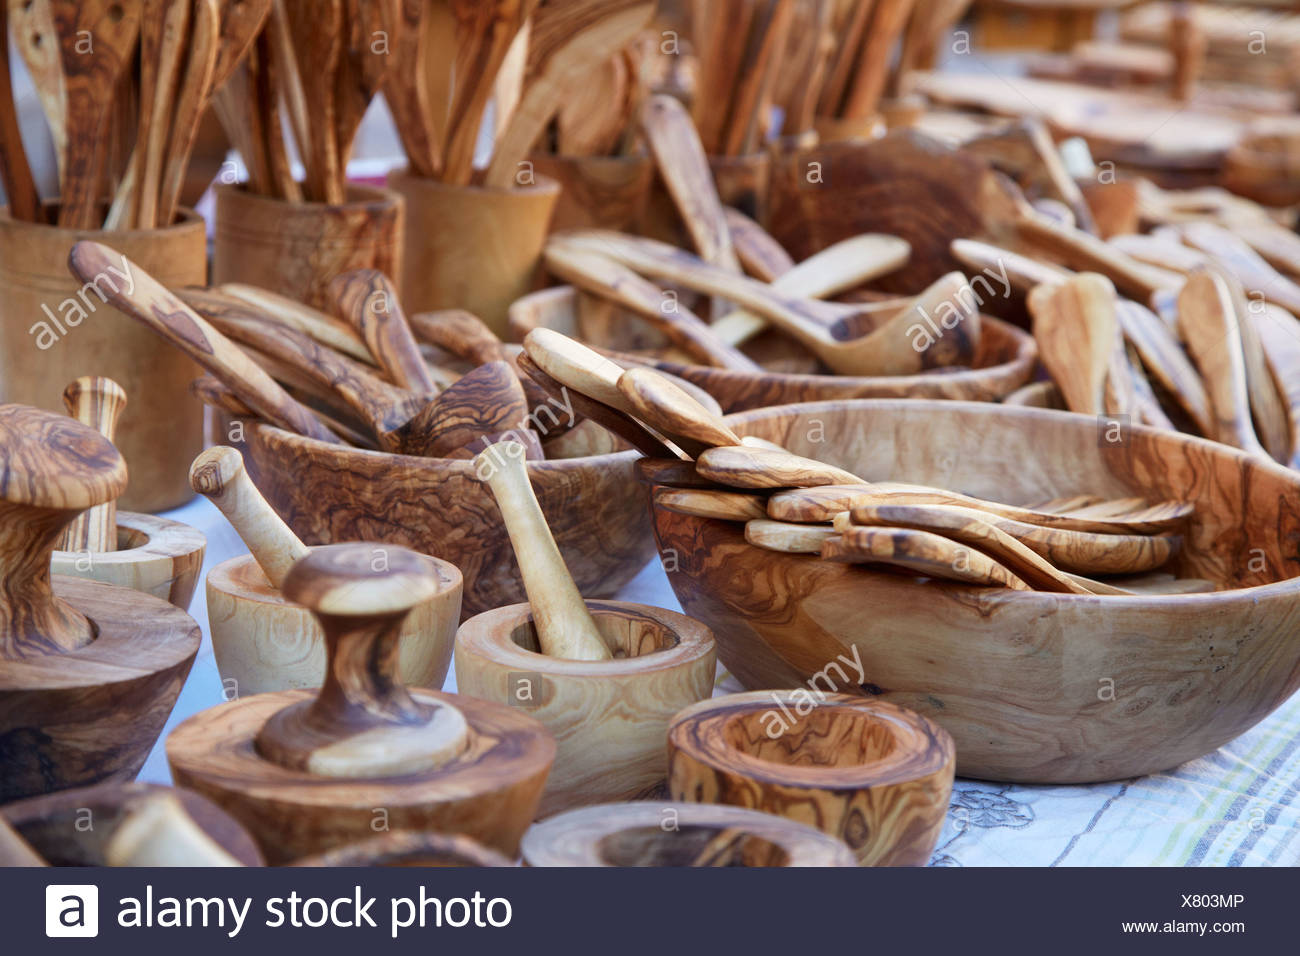 Wooden Stall Stock Photos Wooden Stall Stock Images Alamy